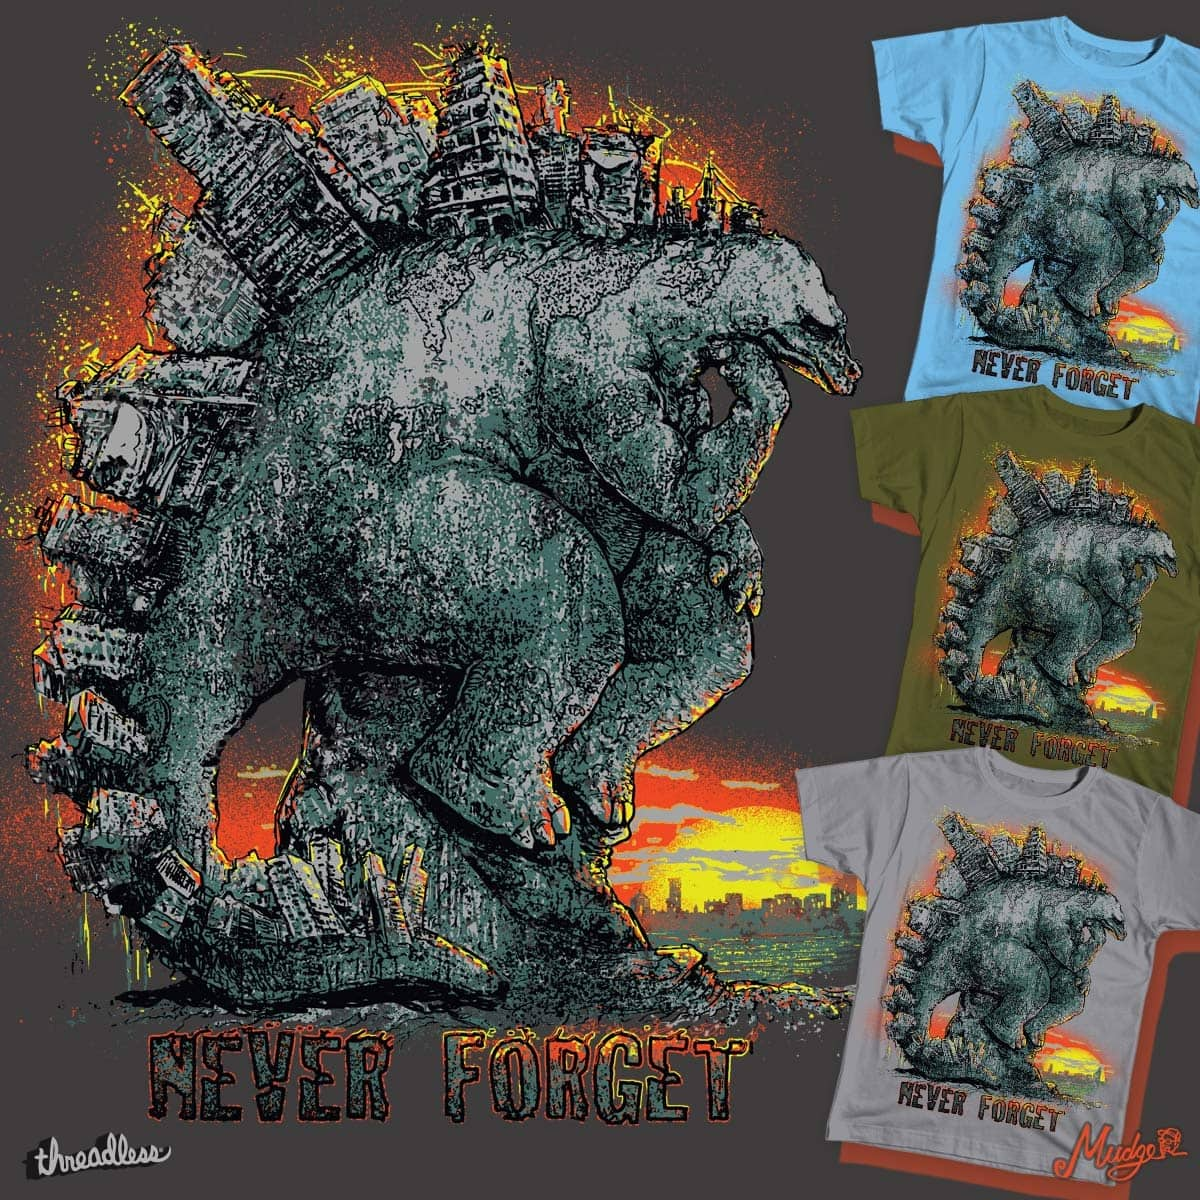 Never Forget Stego Sore Us by MudgeStudios on Threadless